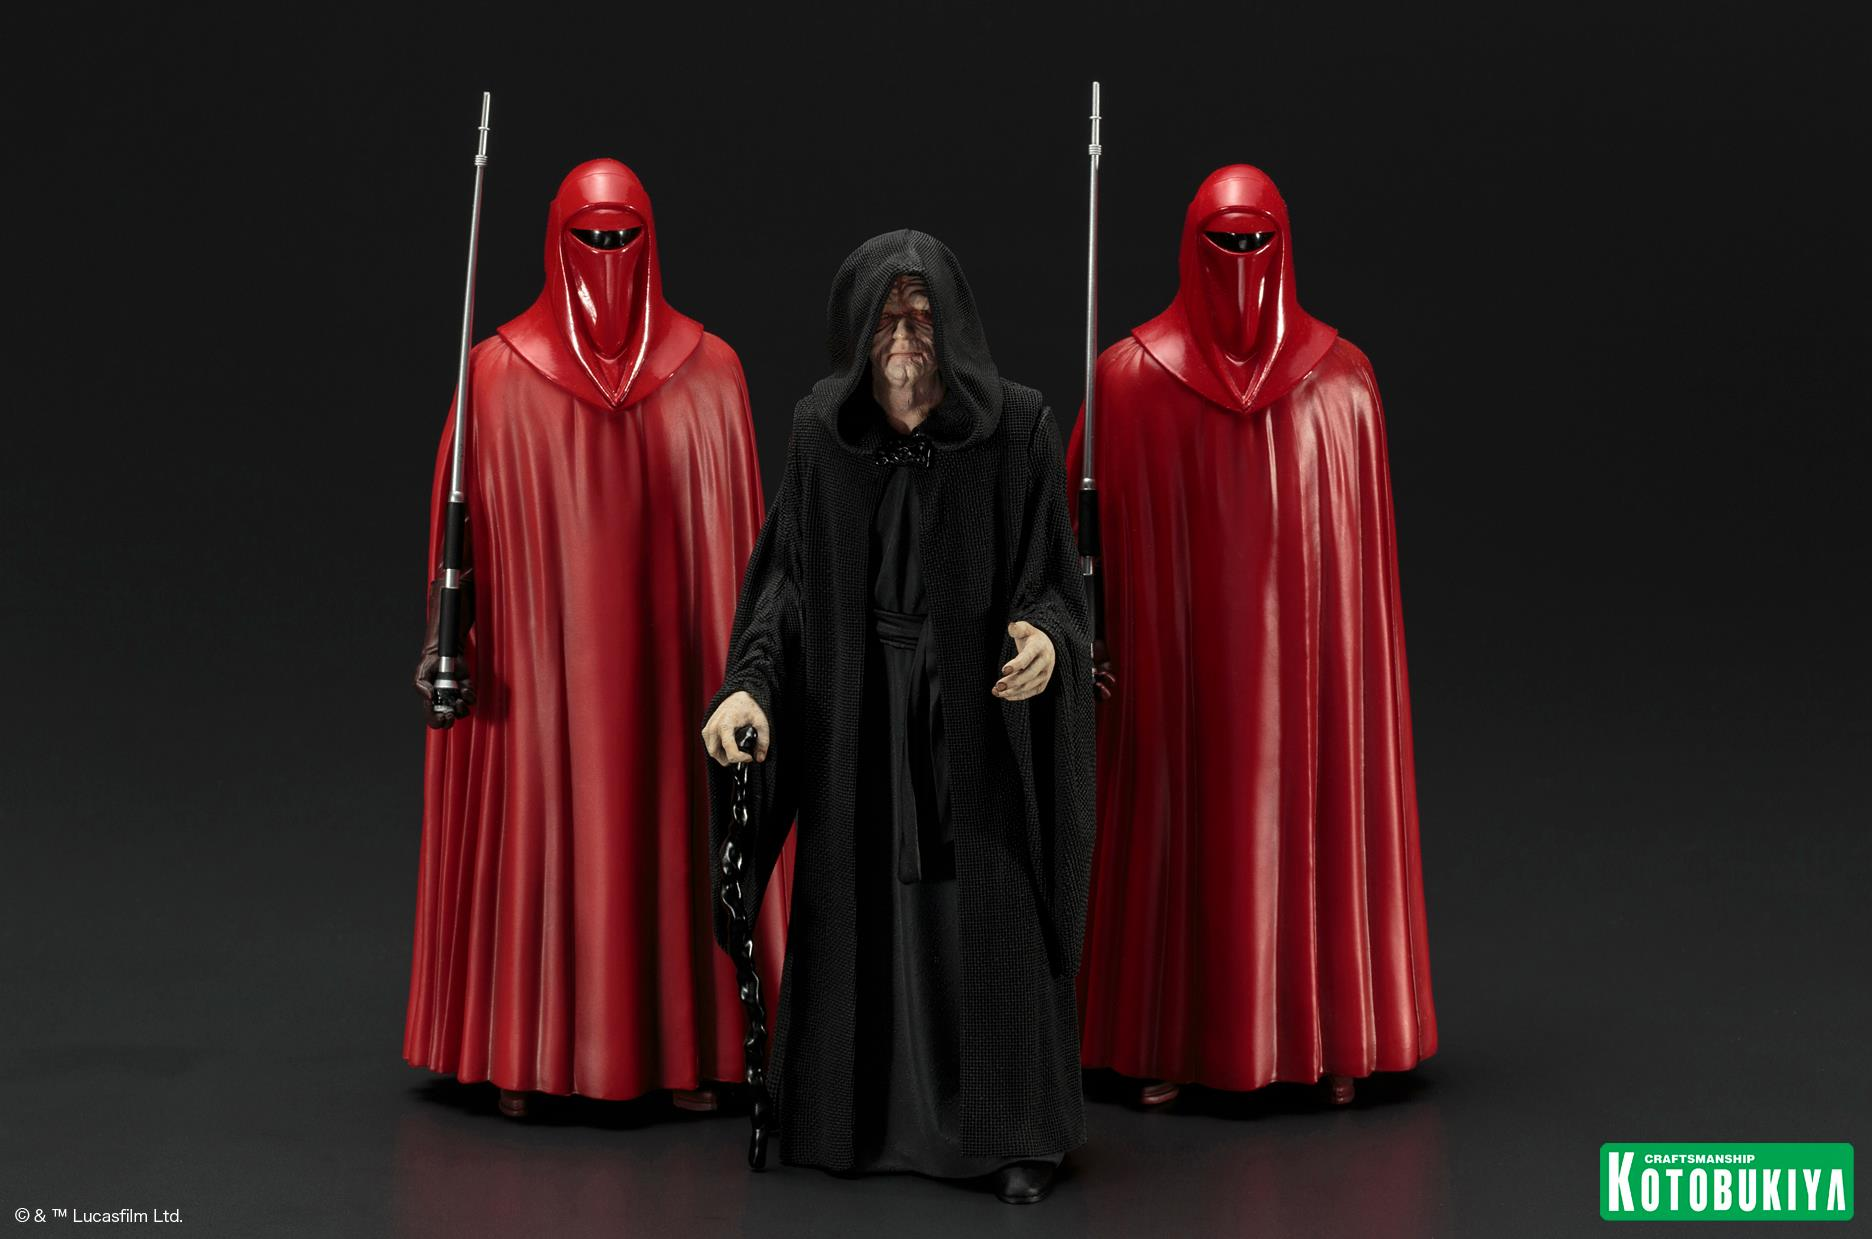 Kotobukiya Star Wars Emperor Palpatine & Royal Guards Statues